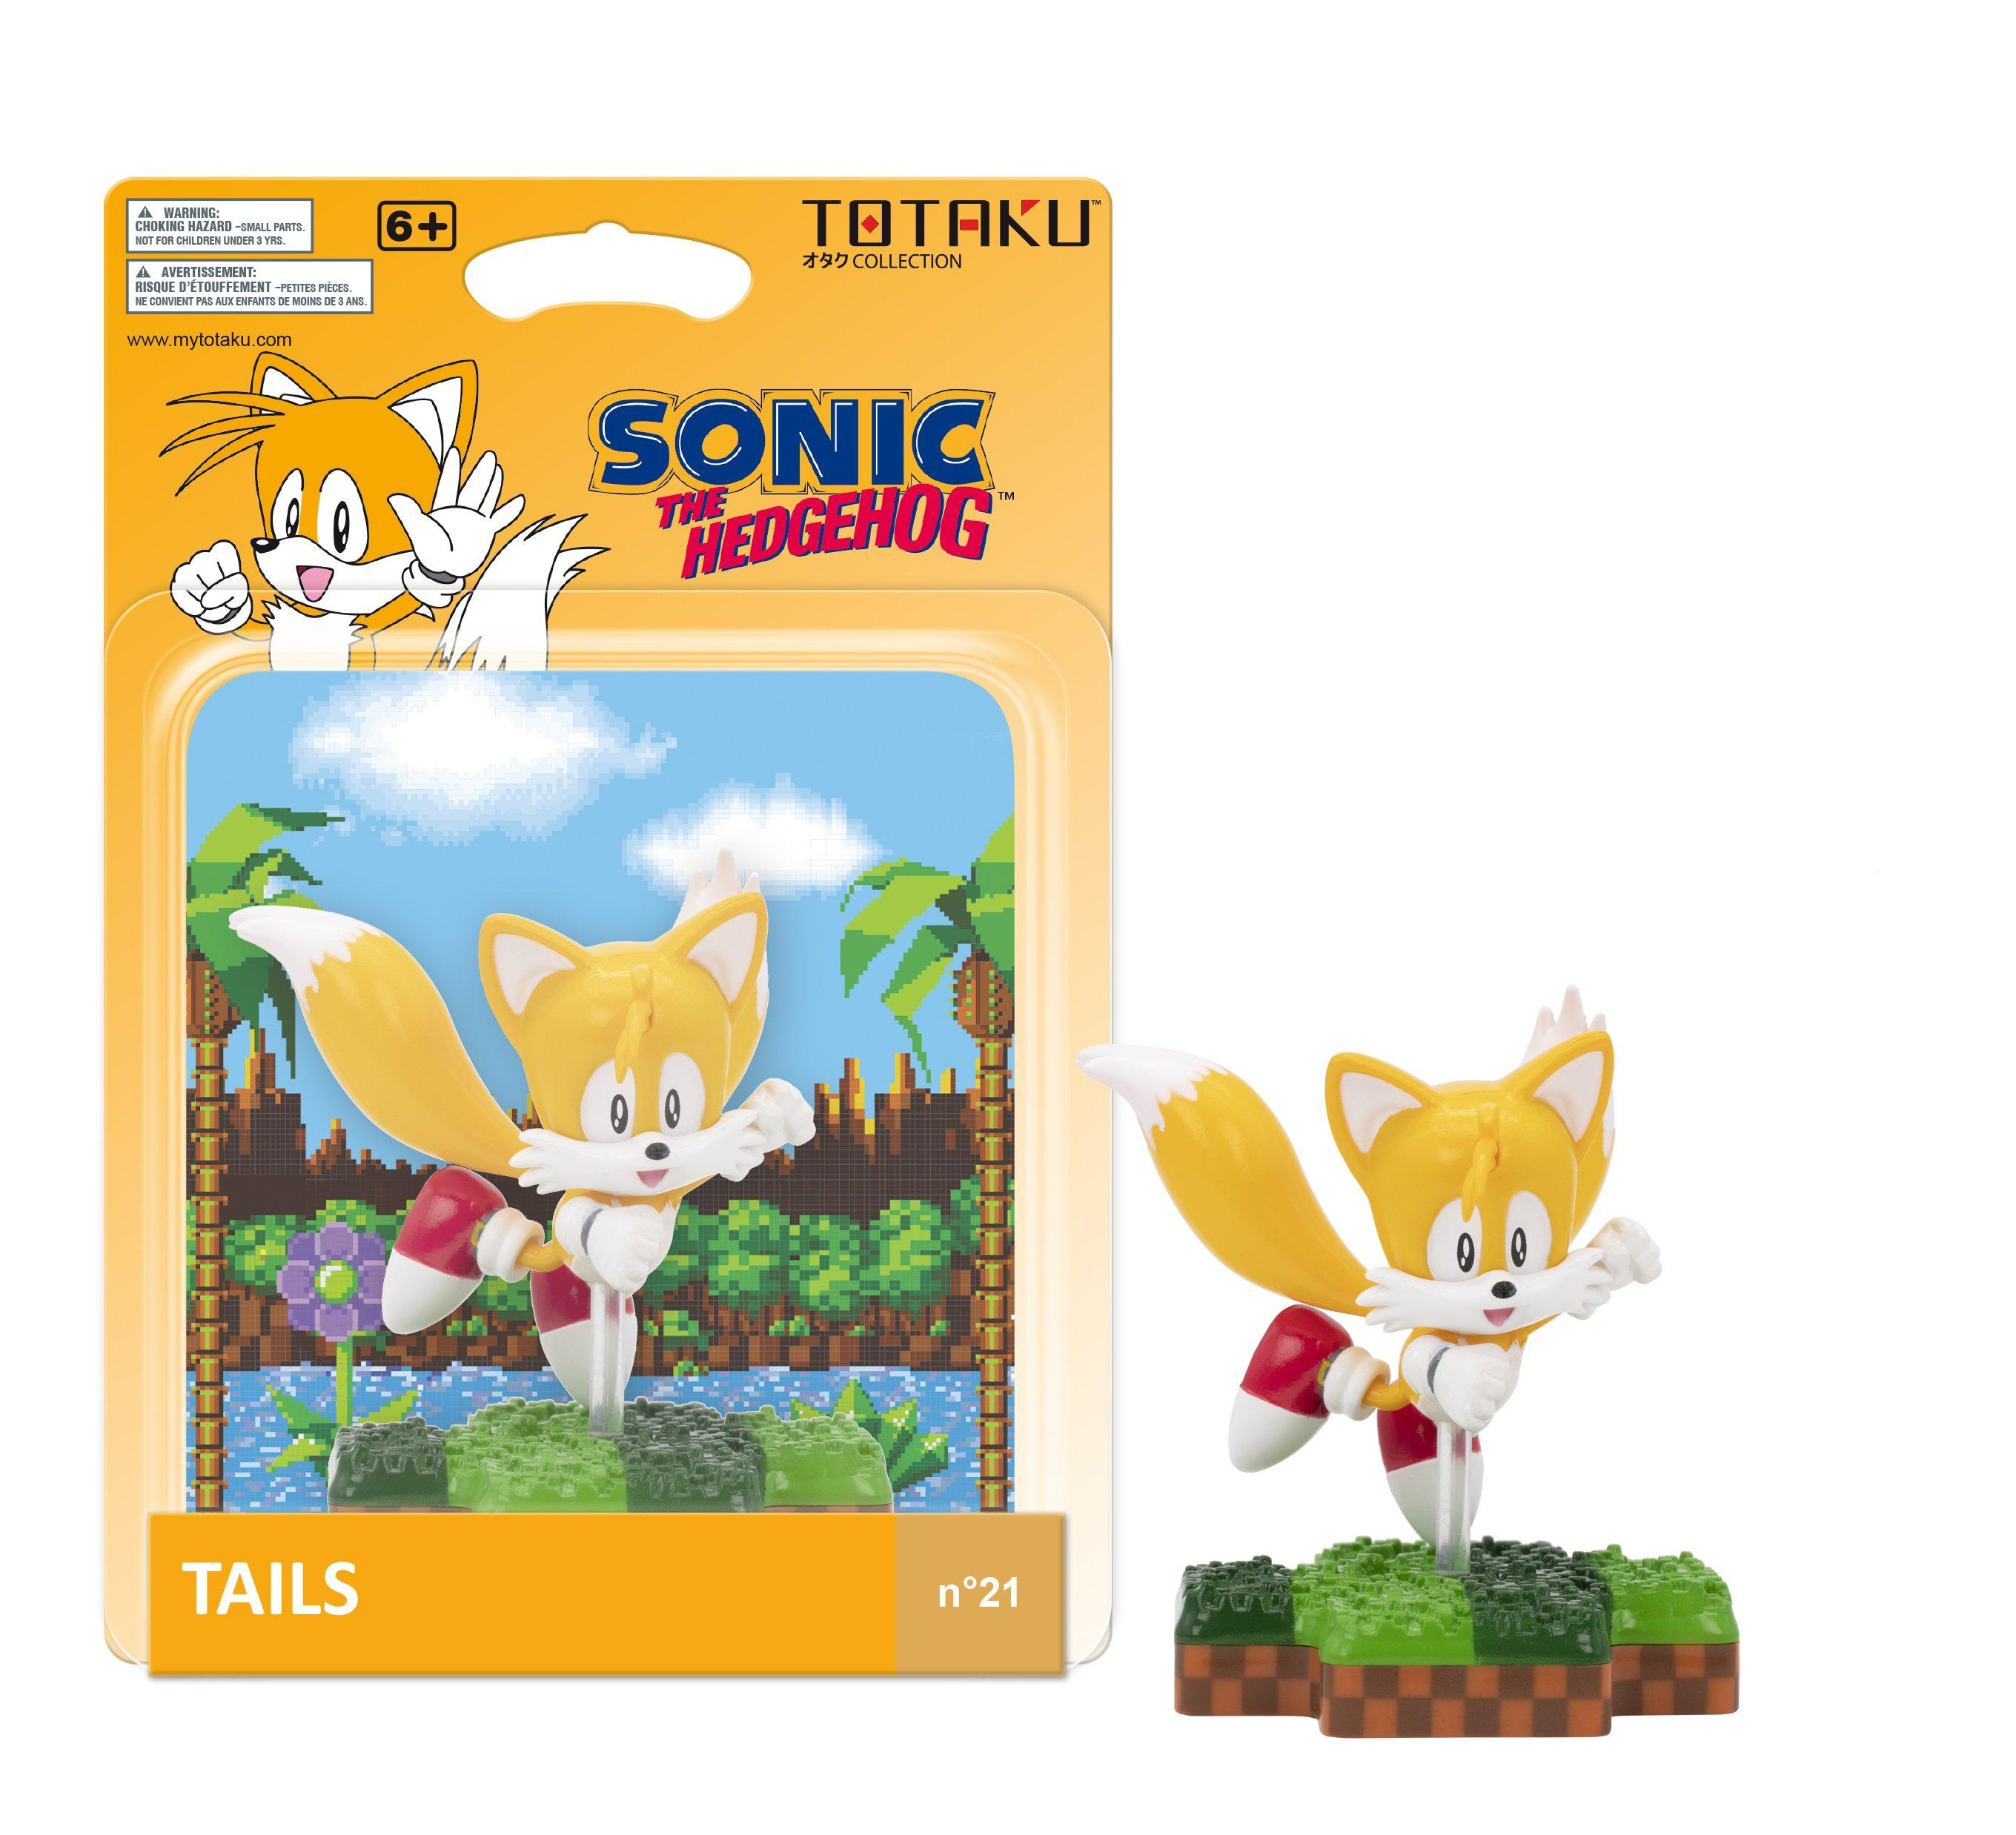 Sonic The Hedgehog Tails Totaku Collection Figure Only At Gamestop Gamestop